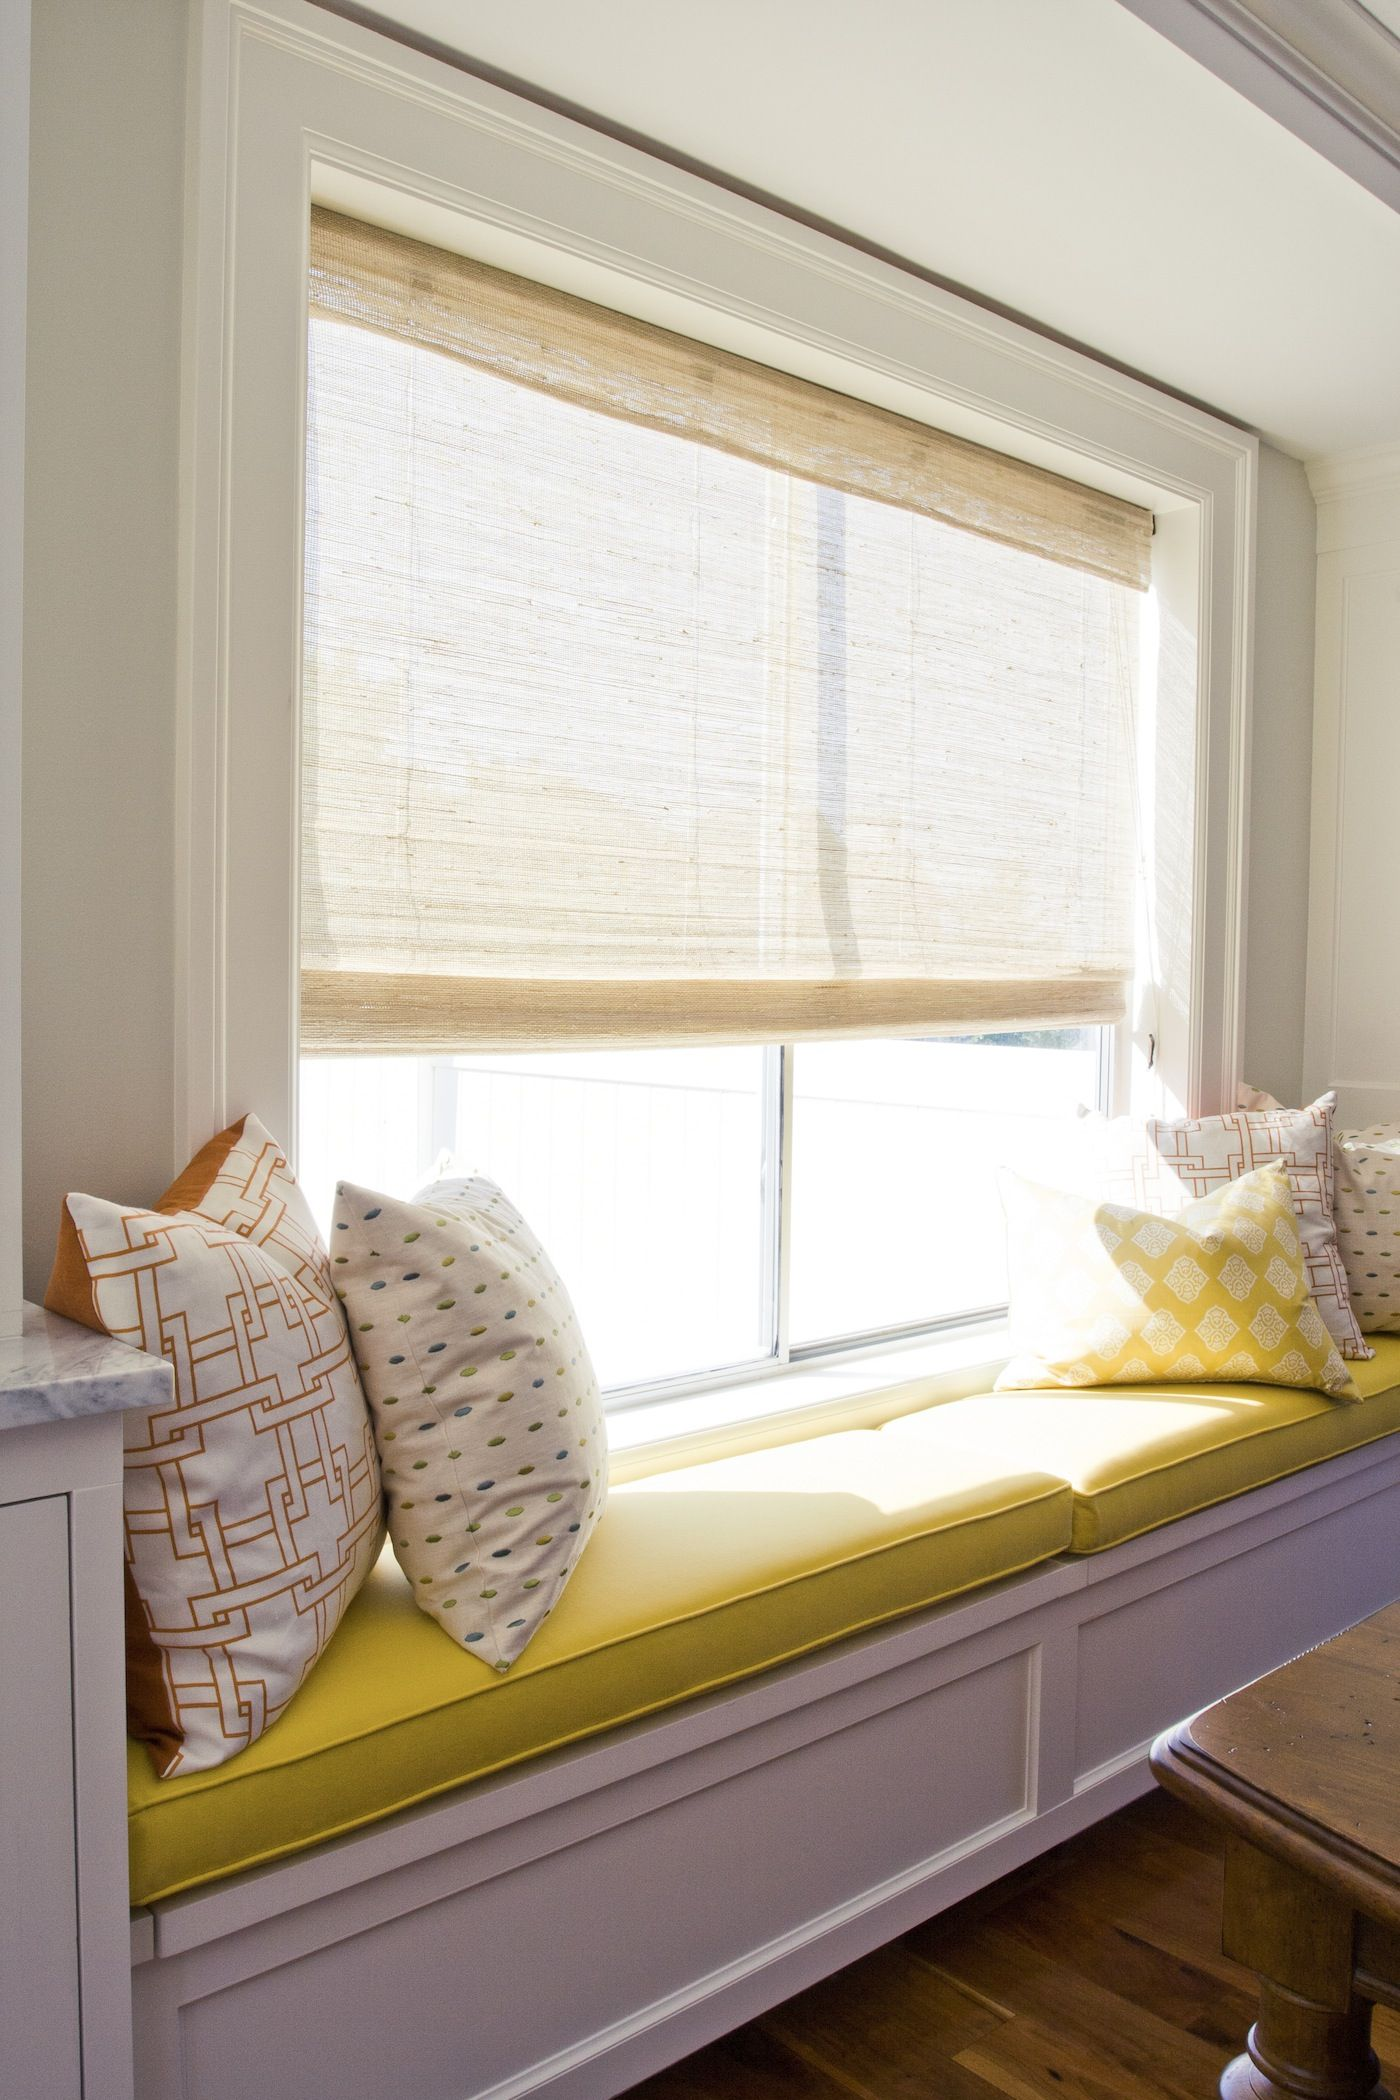 window seat banquette under the playroom windows home pinterest banquettes. Black Bedroom Furniture Sets. Home Design Ideas